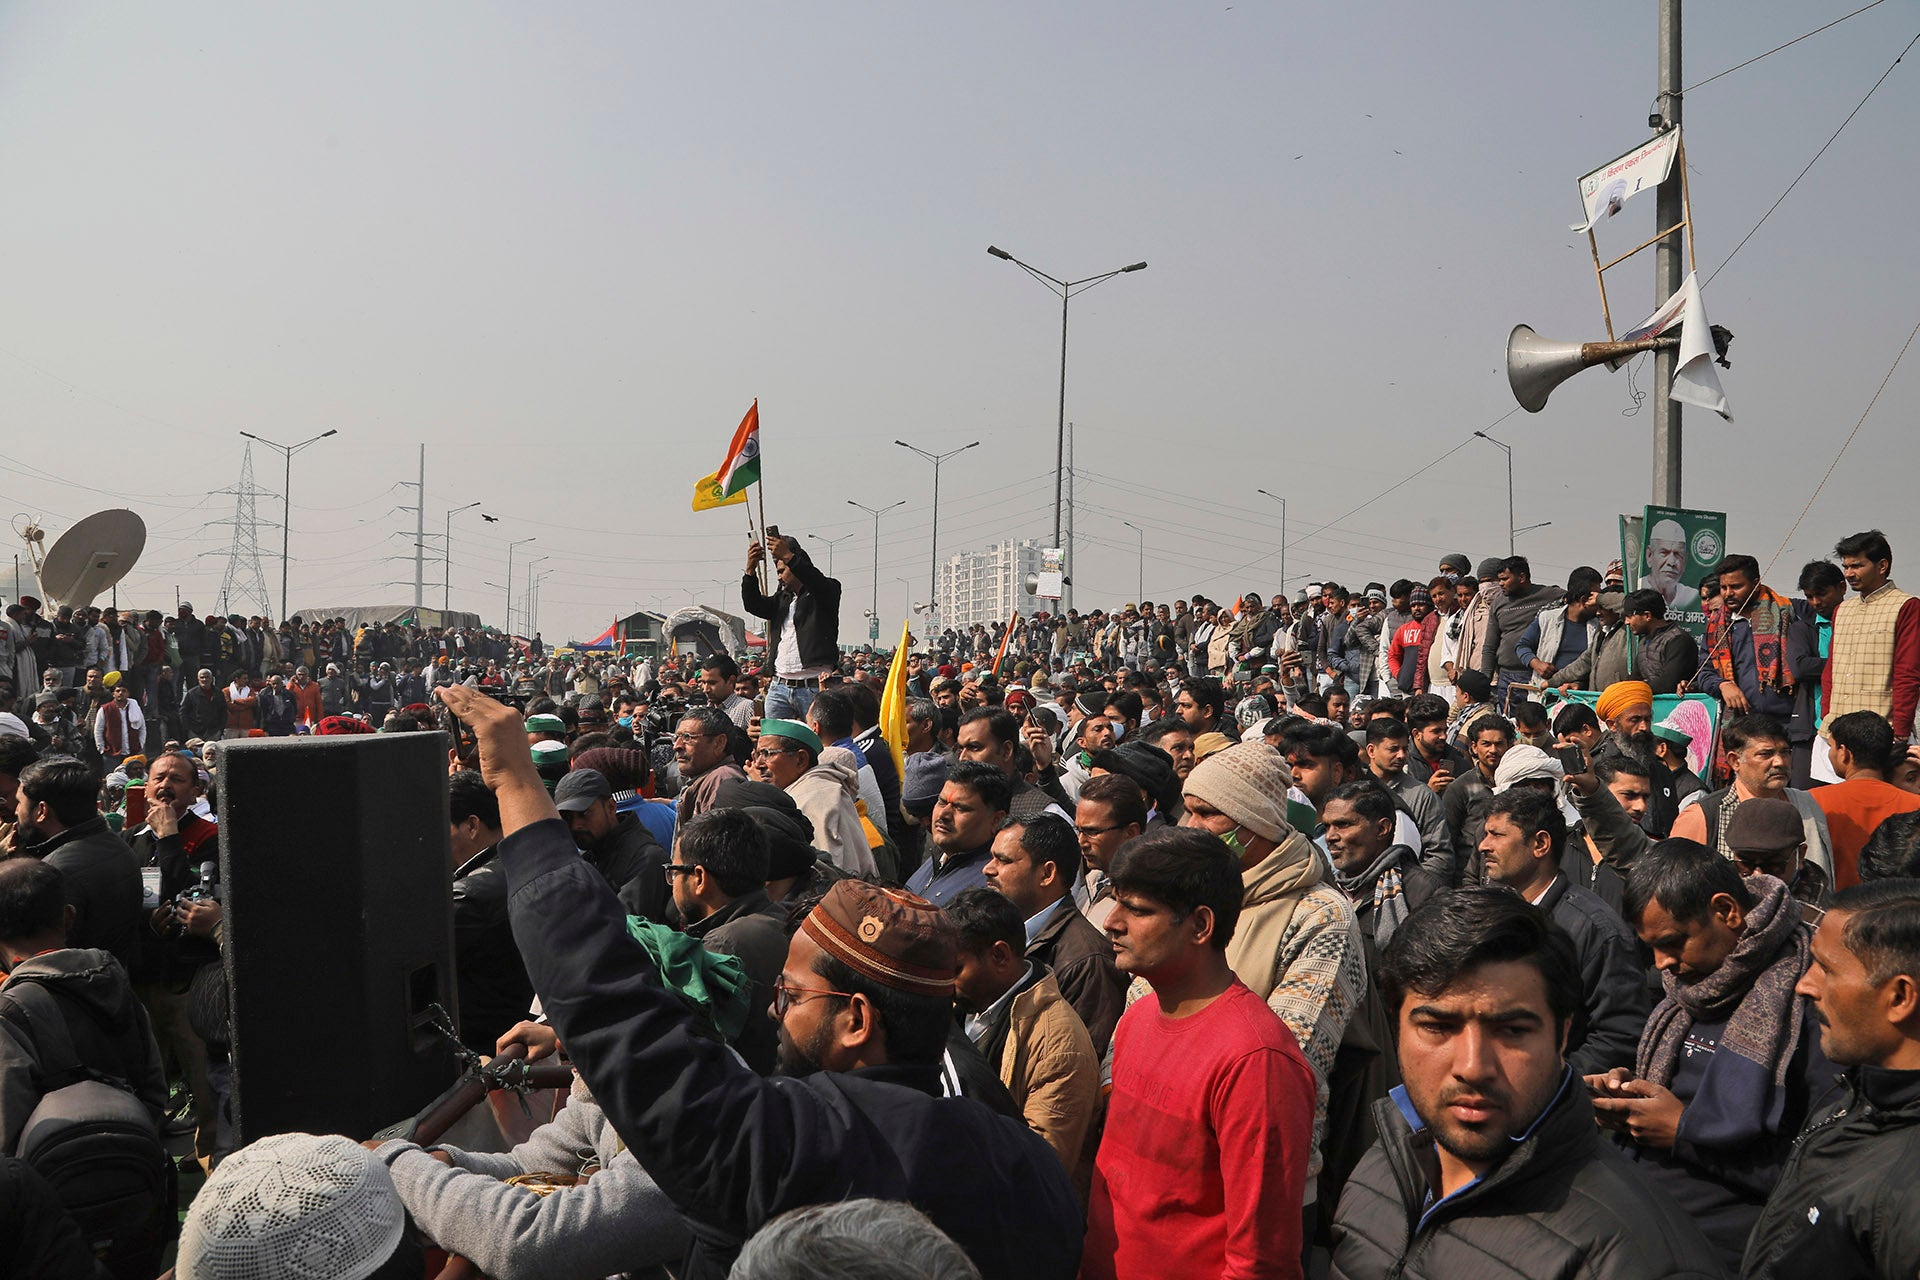 Indian Authorities Lash Out at Protests